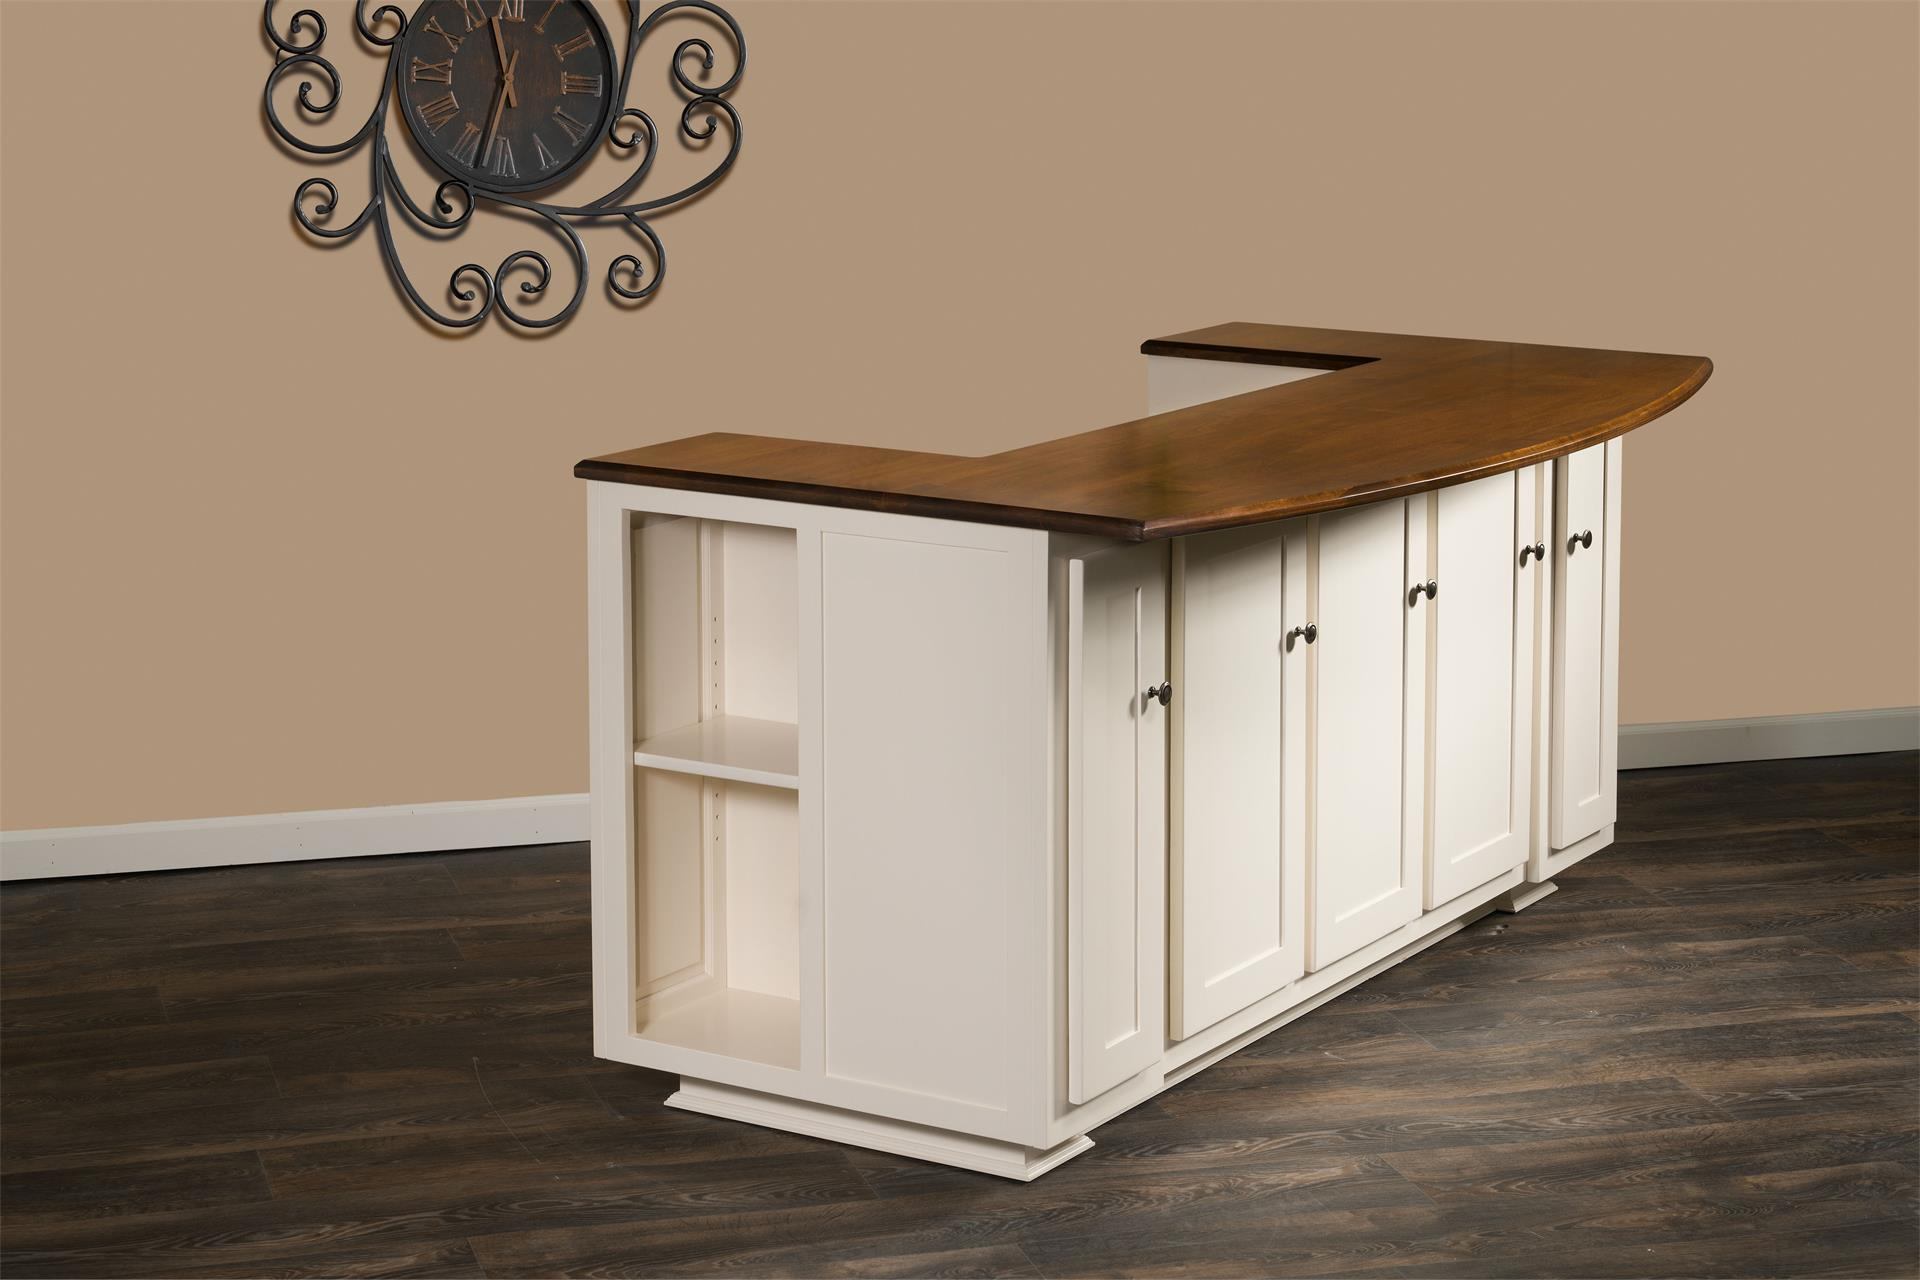 Newbury Kitchen Island With Bench From DutchCrafters Amish Furniture - Amish kitchen island